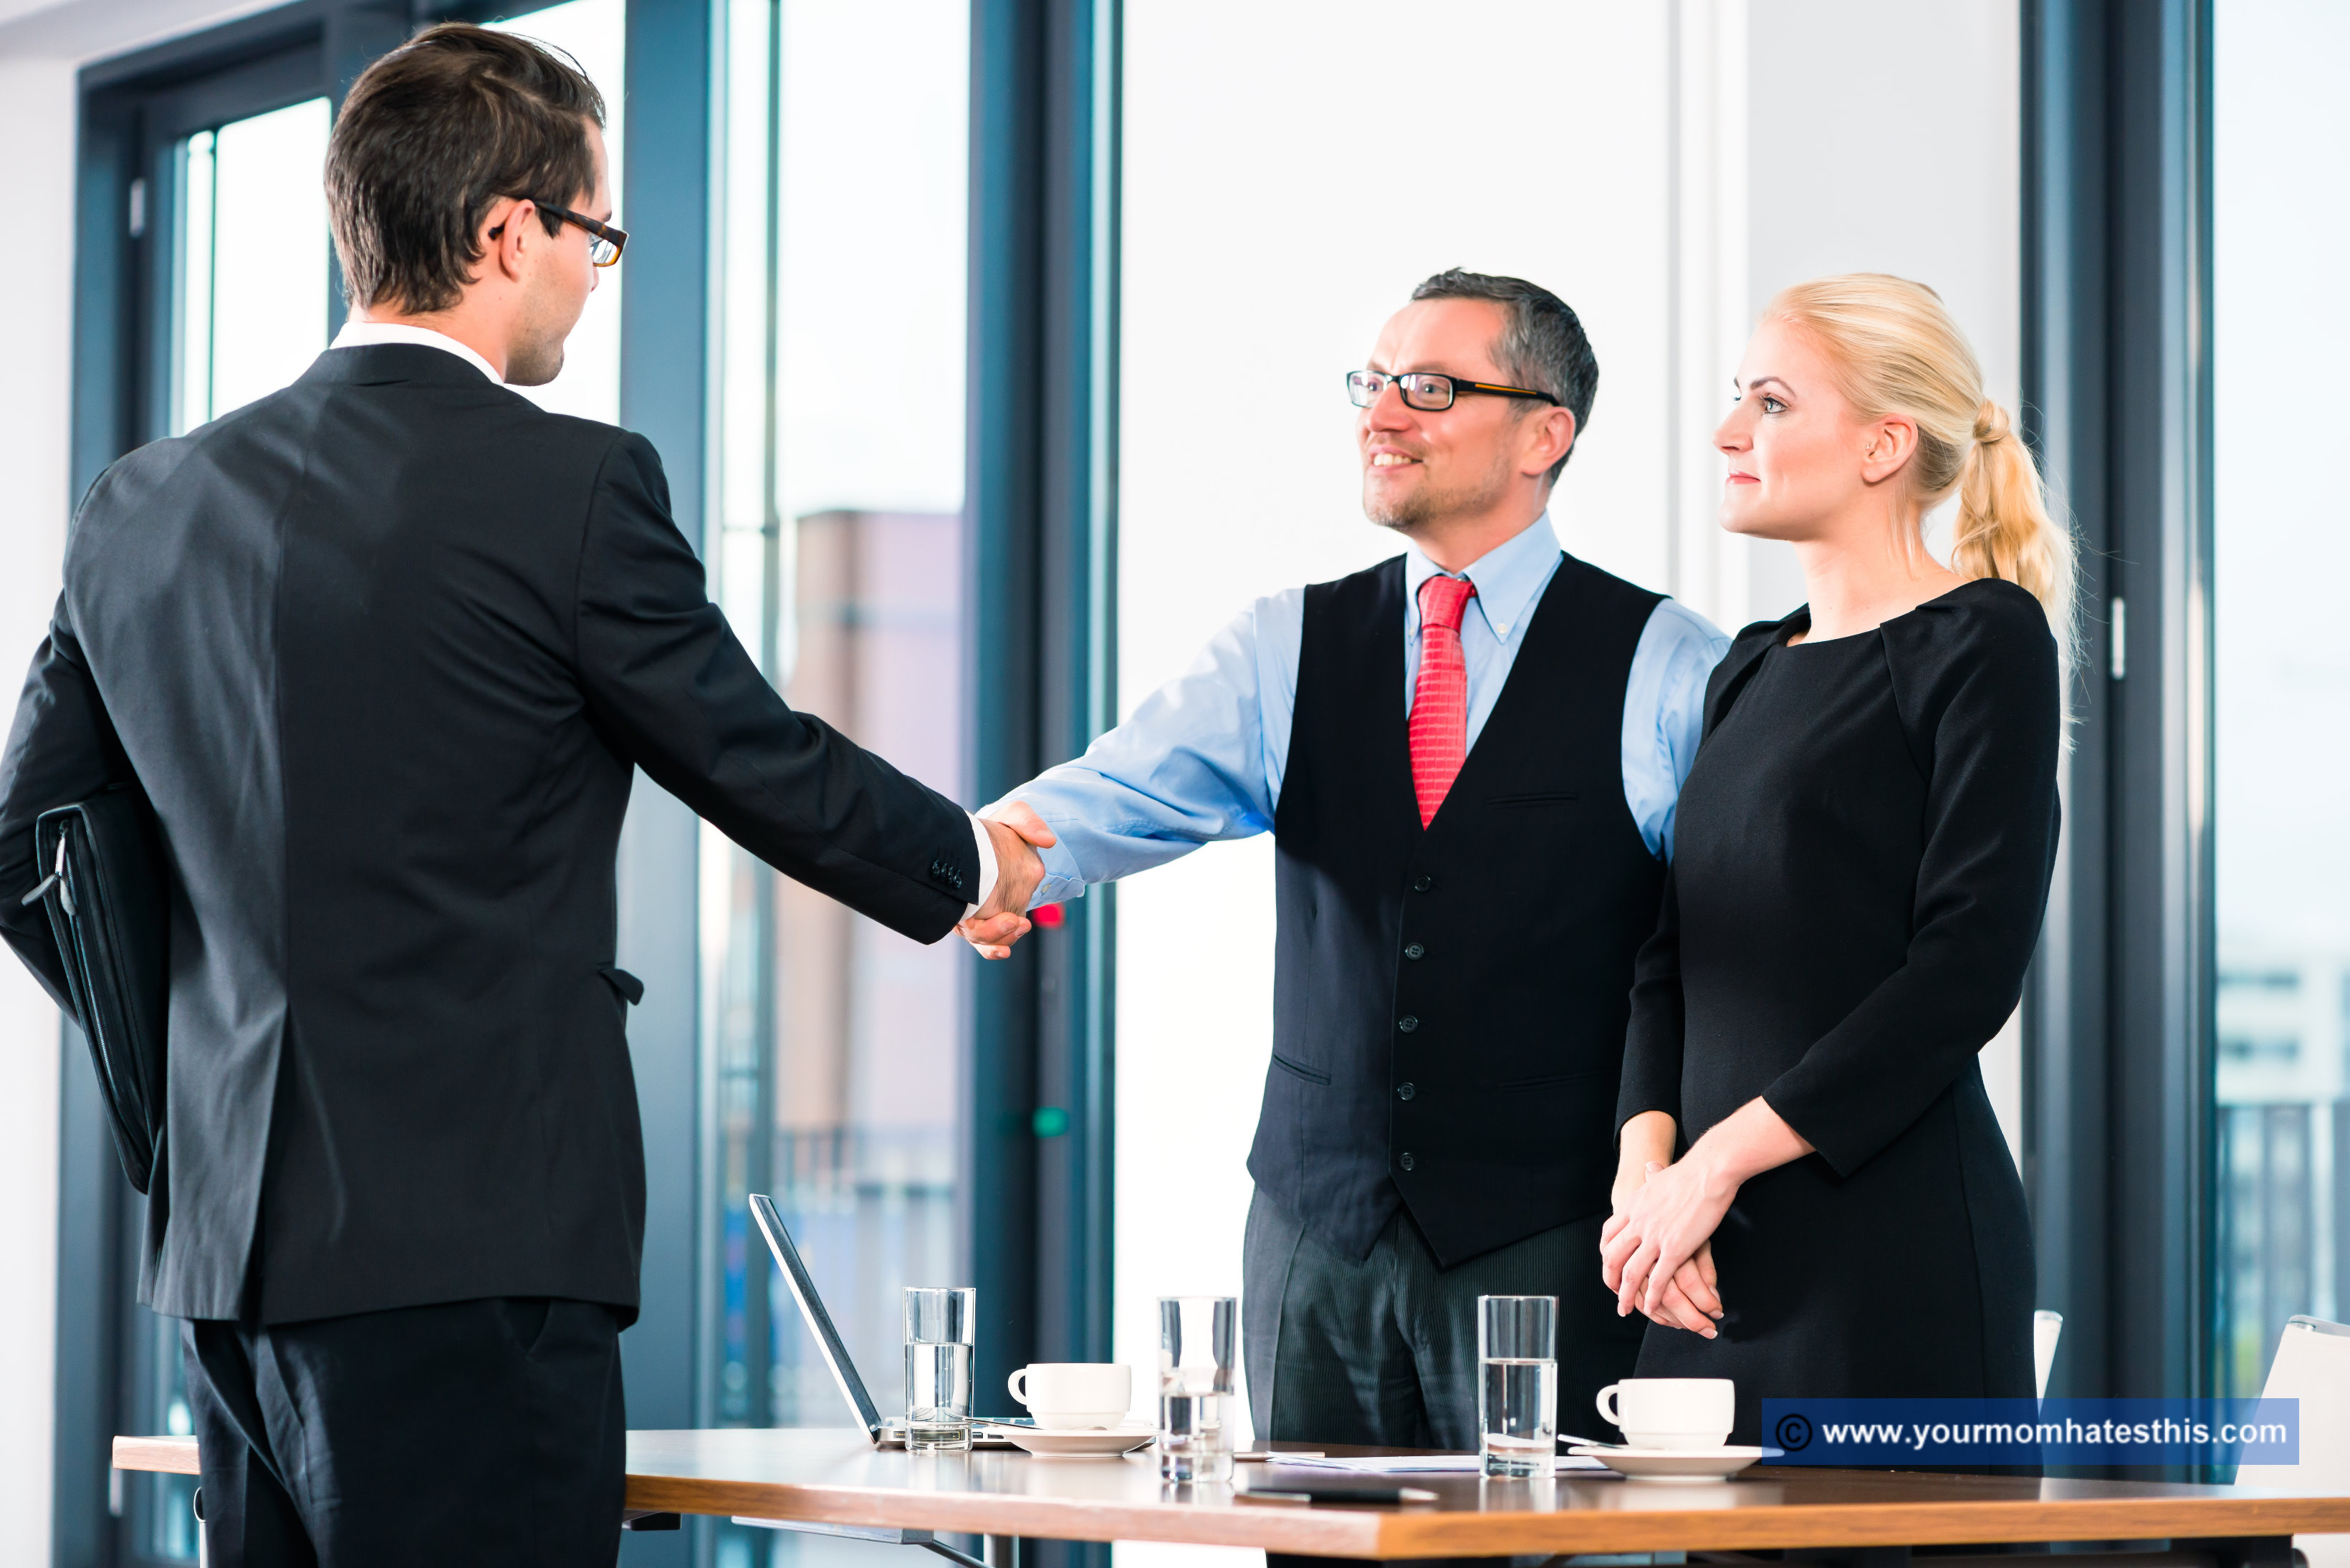 5 Points to Consider Before Taking a Job Offer